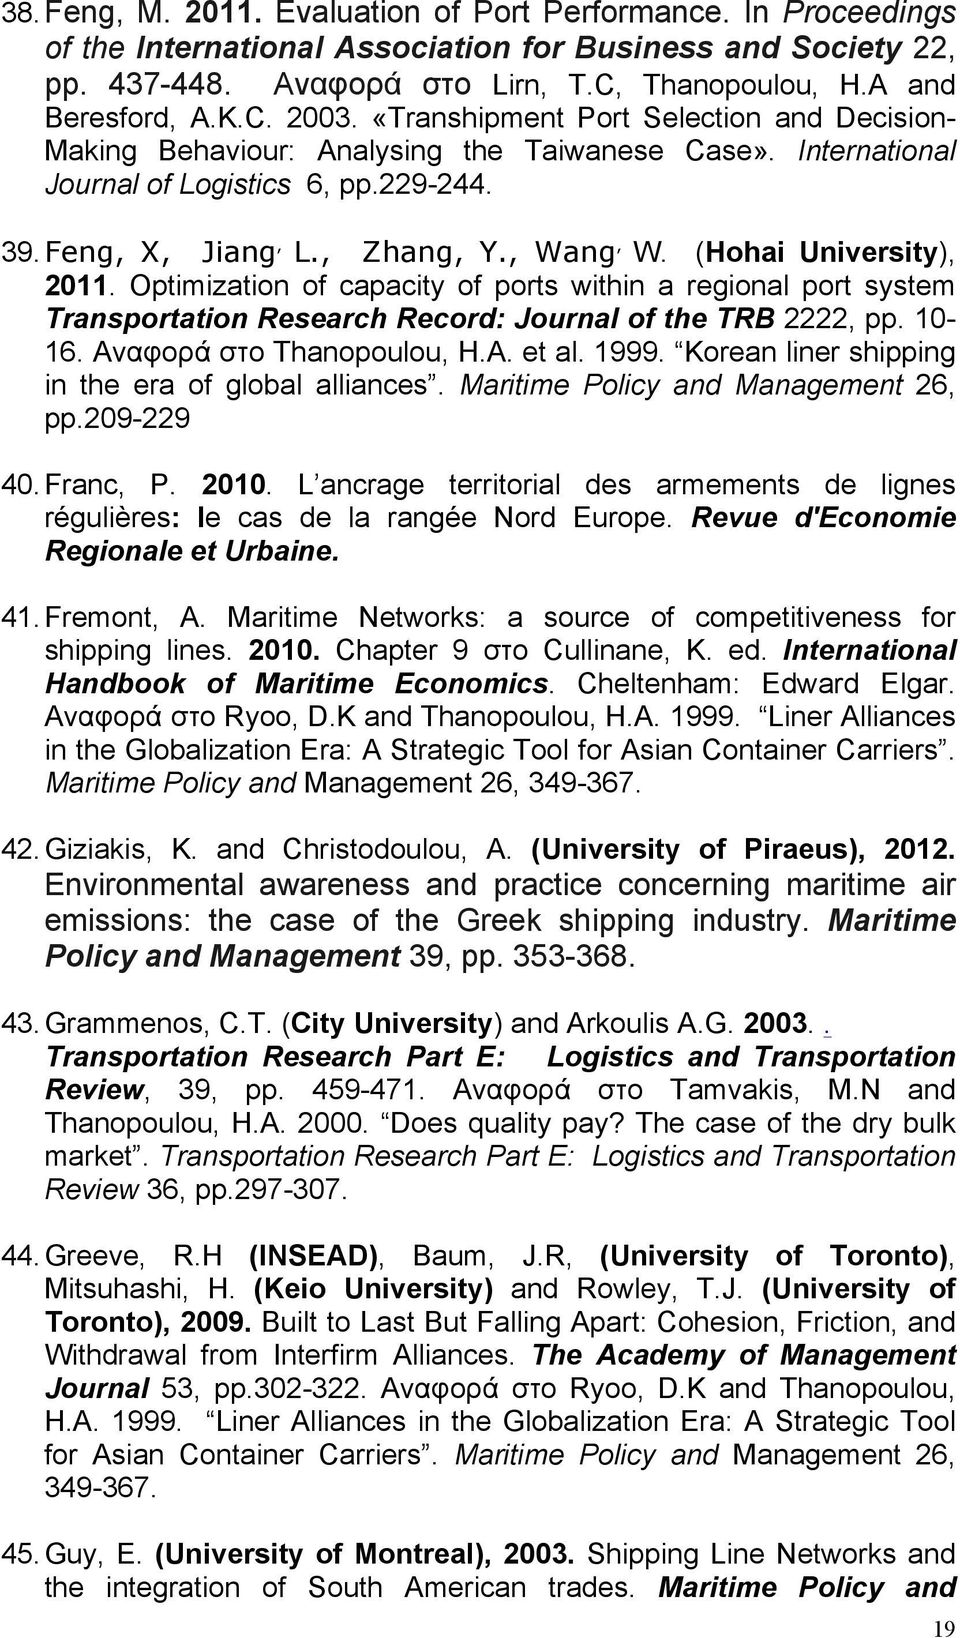 (Hohai University), 2011. Optimization of capacity of ports within a regional port system Transportation Research Record: Journal of the TRB 2222, pp. 10-16. Αναφορά στο Thanopoulou, H.A. et al. 1999.